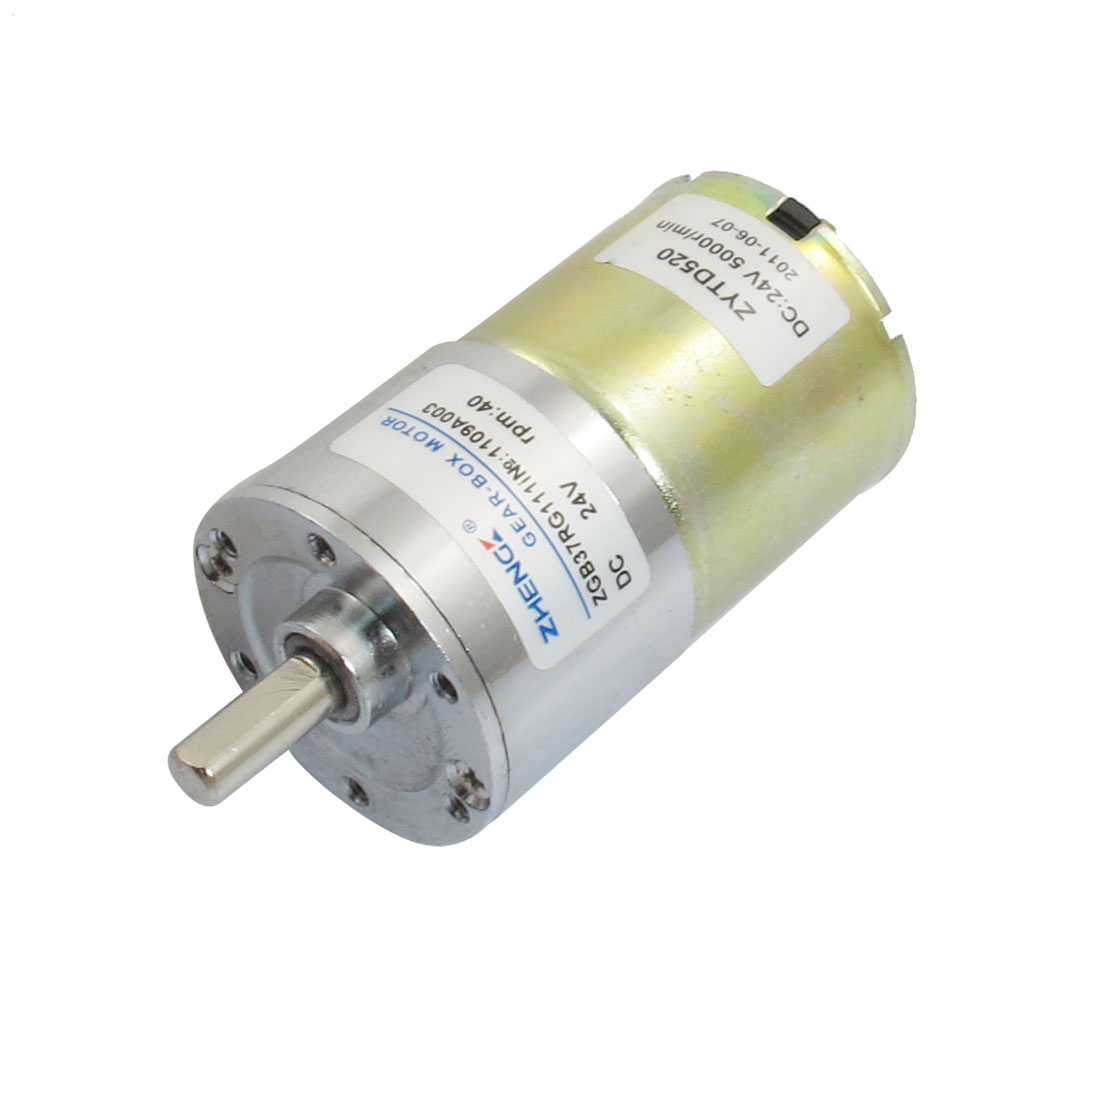 37mm Diameter Grill Electronic Parts Geared Motor 40RPM 24VDC